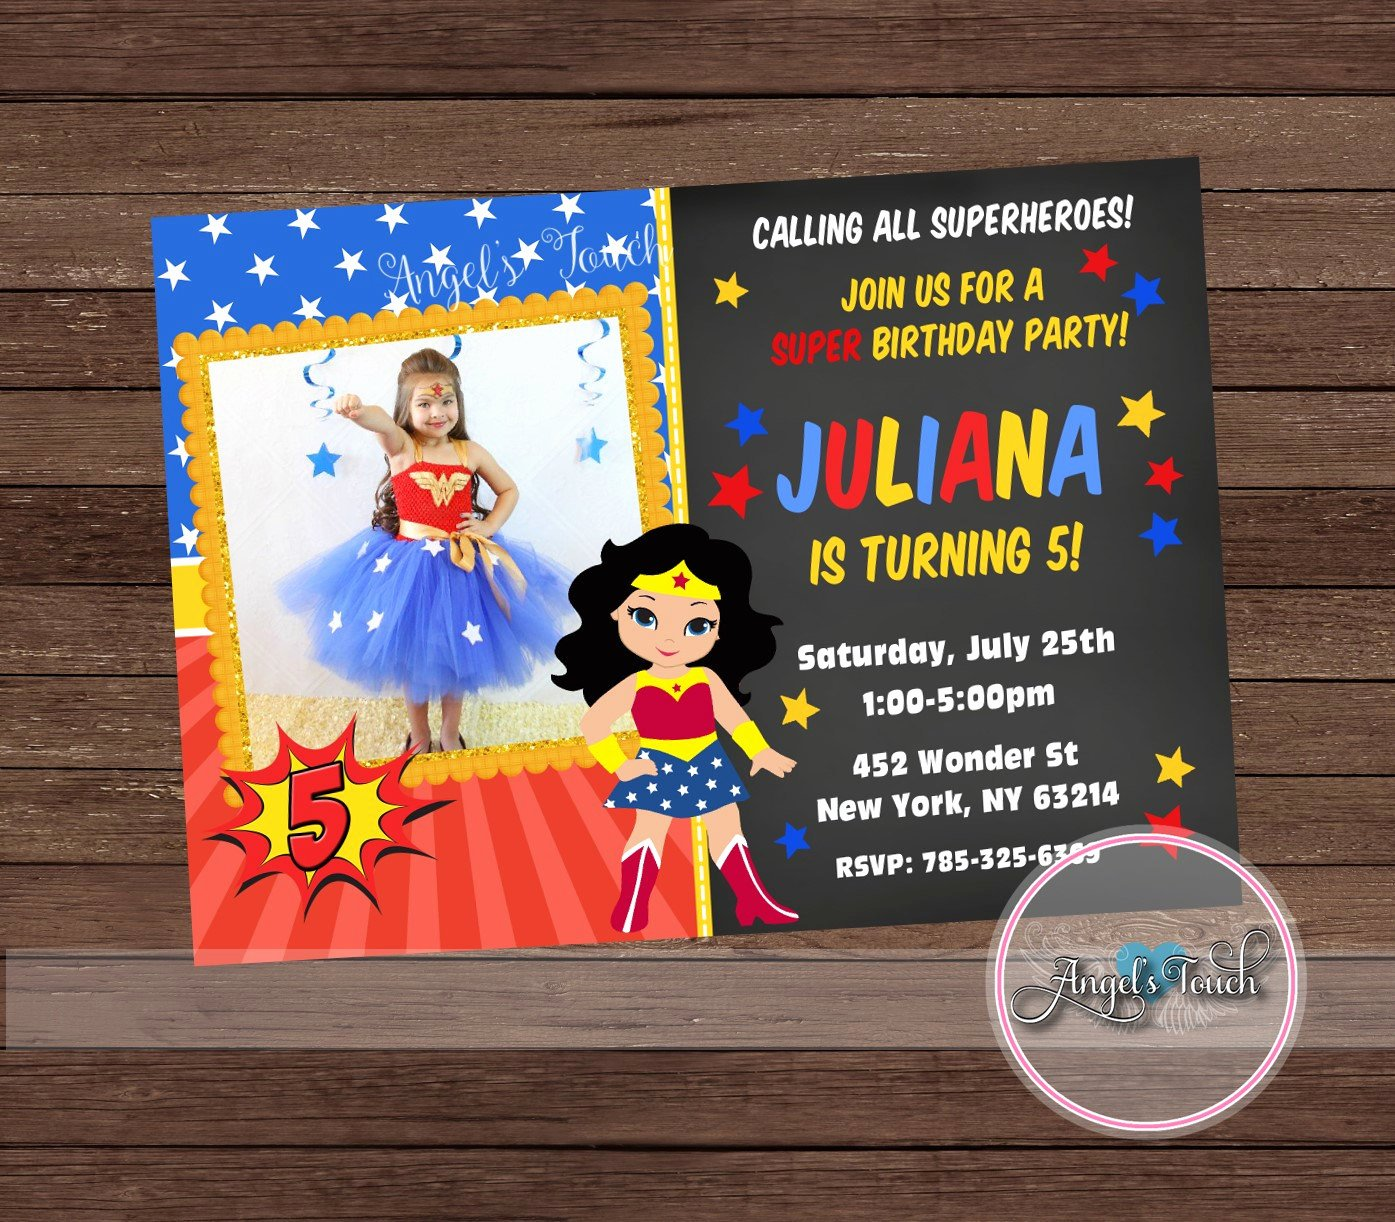 Wonder Woman Invitation Template Beautiful Wonder Woman Party Invitation Wonder Woman Invitation